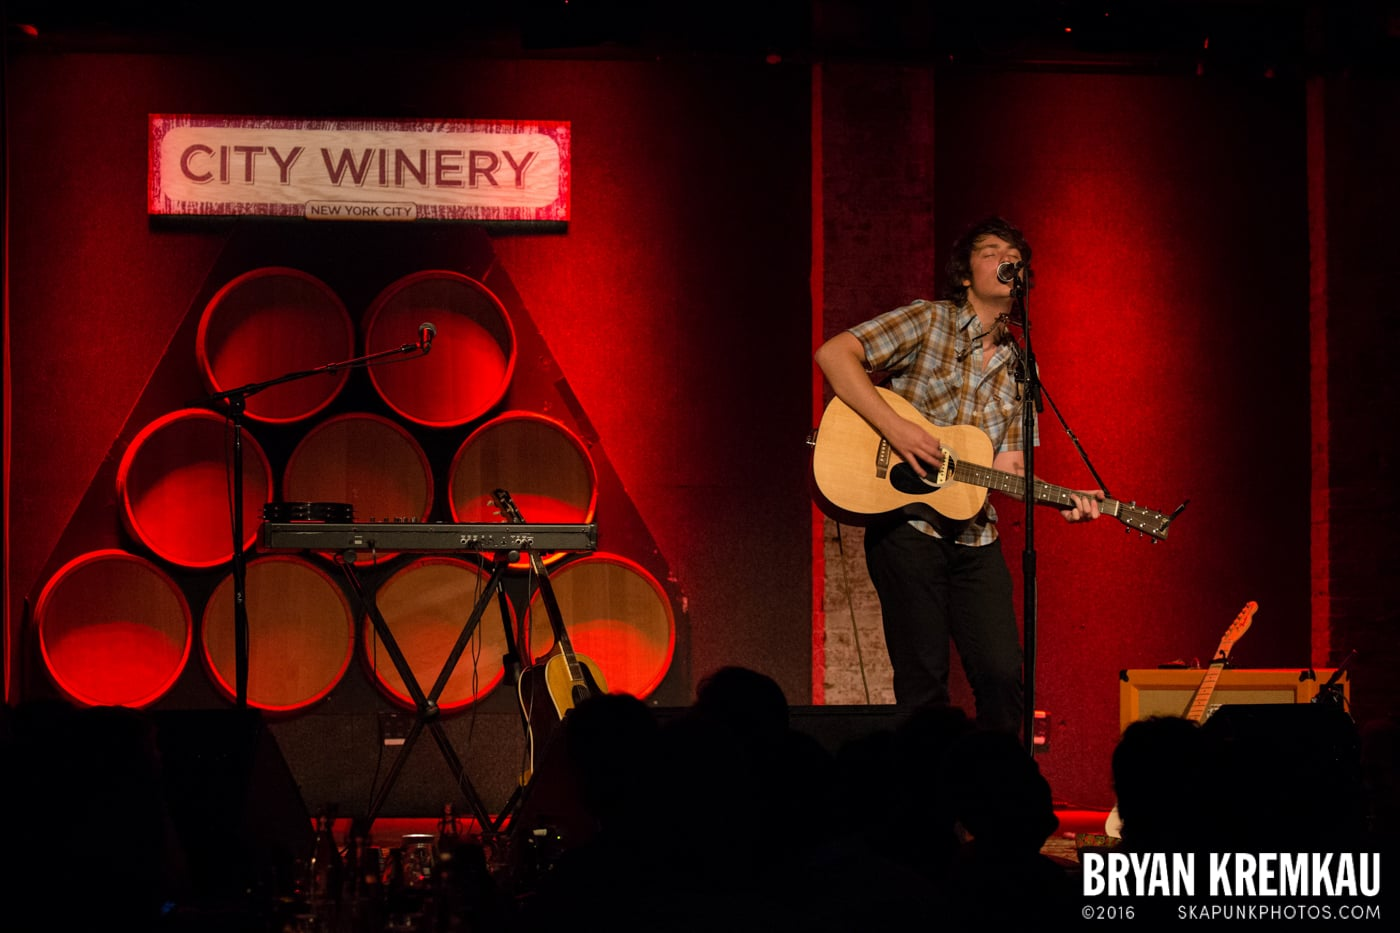 Trapper Schoepp @ City Winery, NYC - 6.26.13 (1)